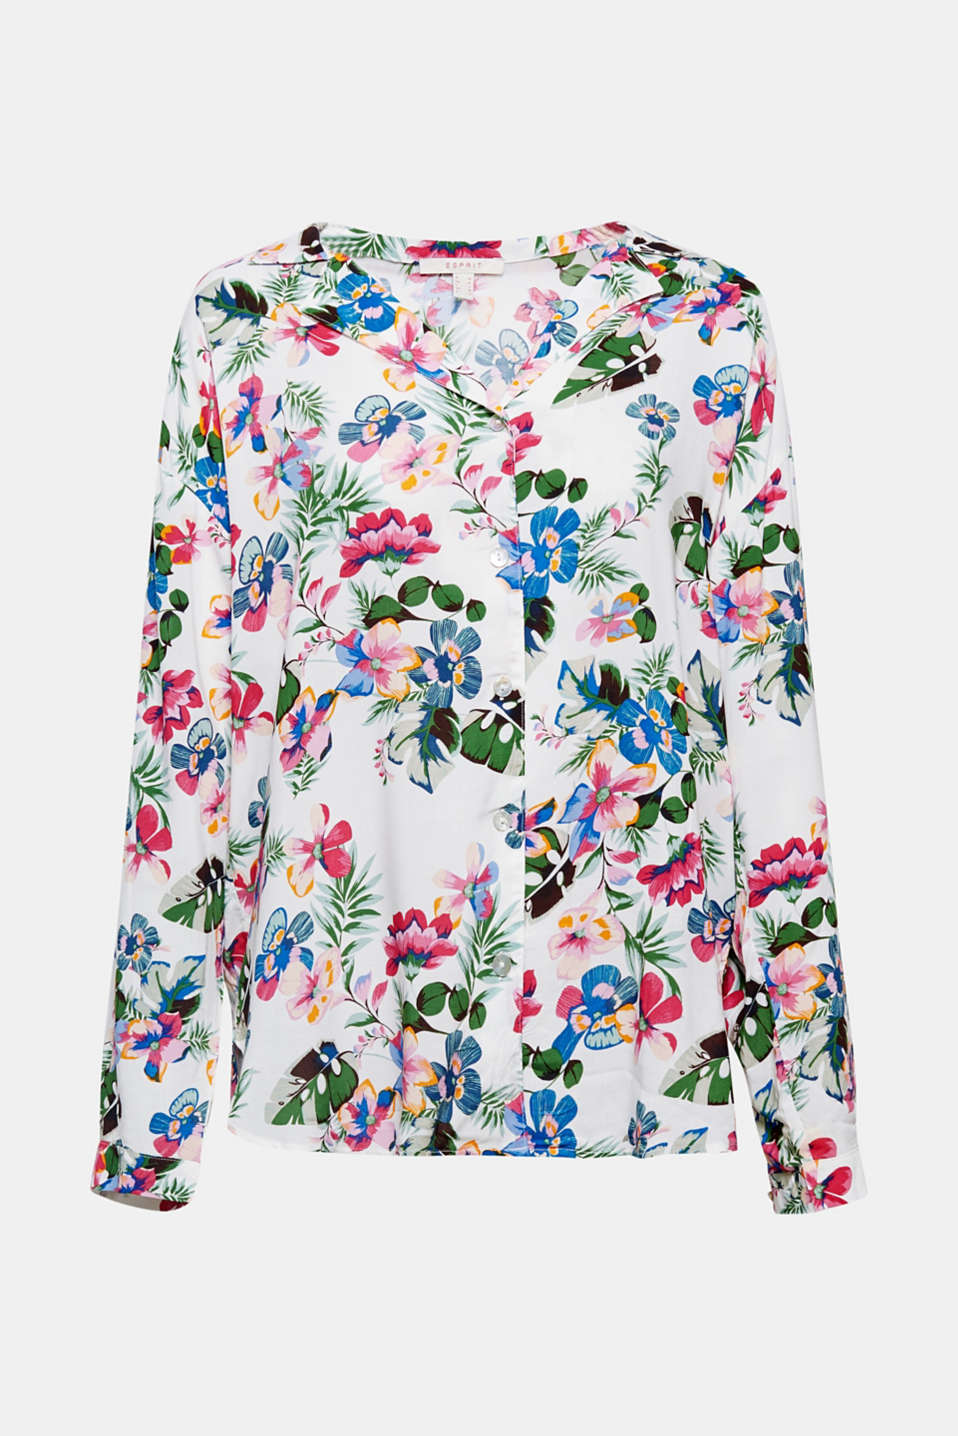 The colourful Hawaii print immediately brings about the mood for holiday and good vibes: loose, lightweight blouse with a wide, open collar and casual fit.